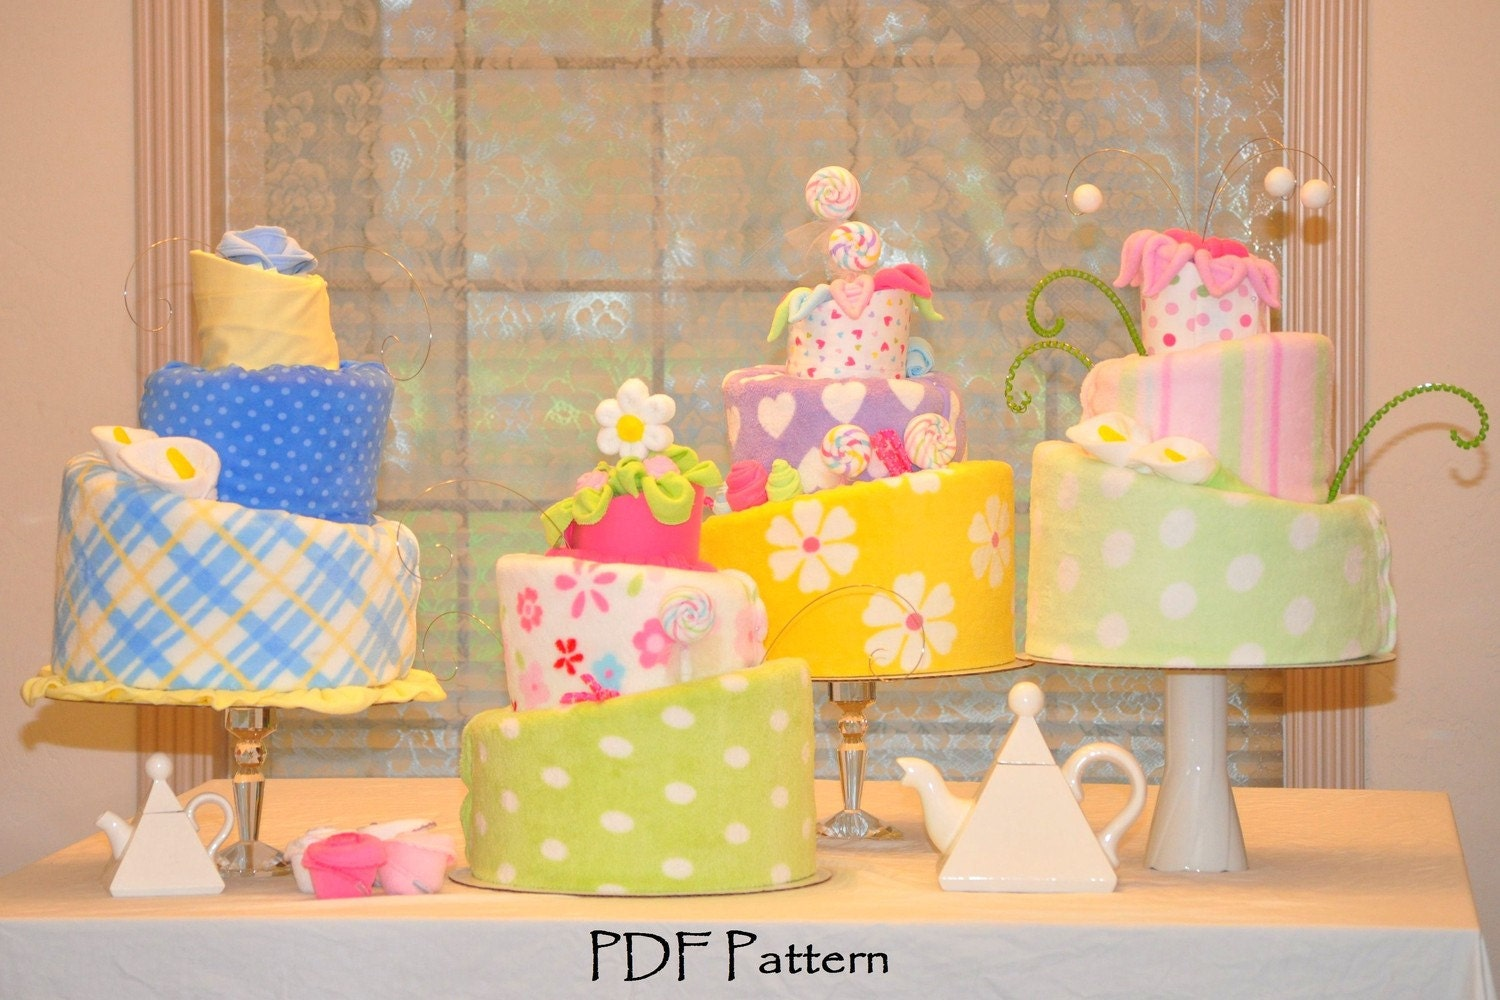 Topsy Turvy Diaper Cake Video and PDF